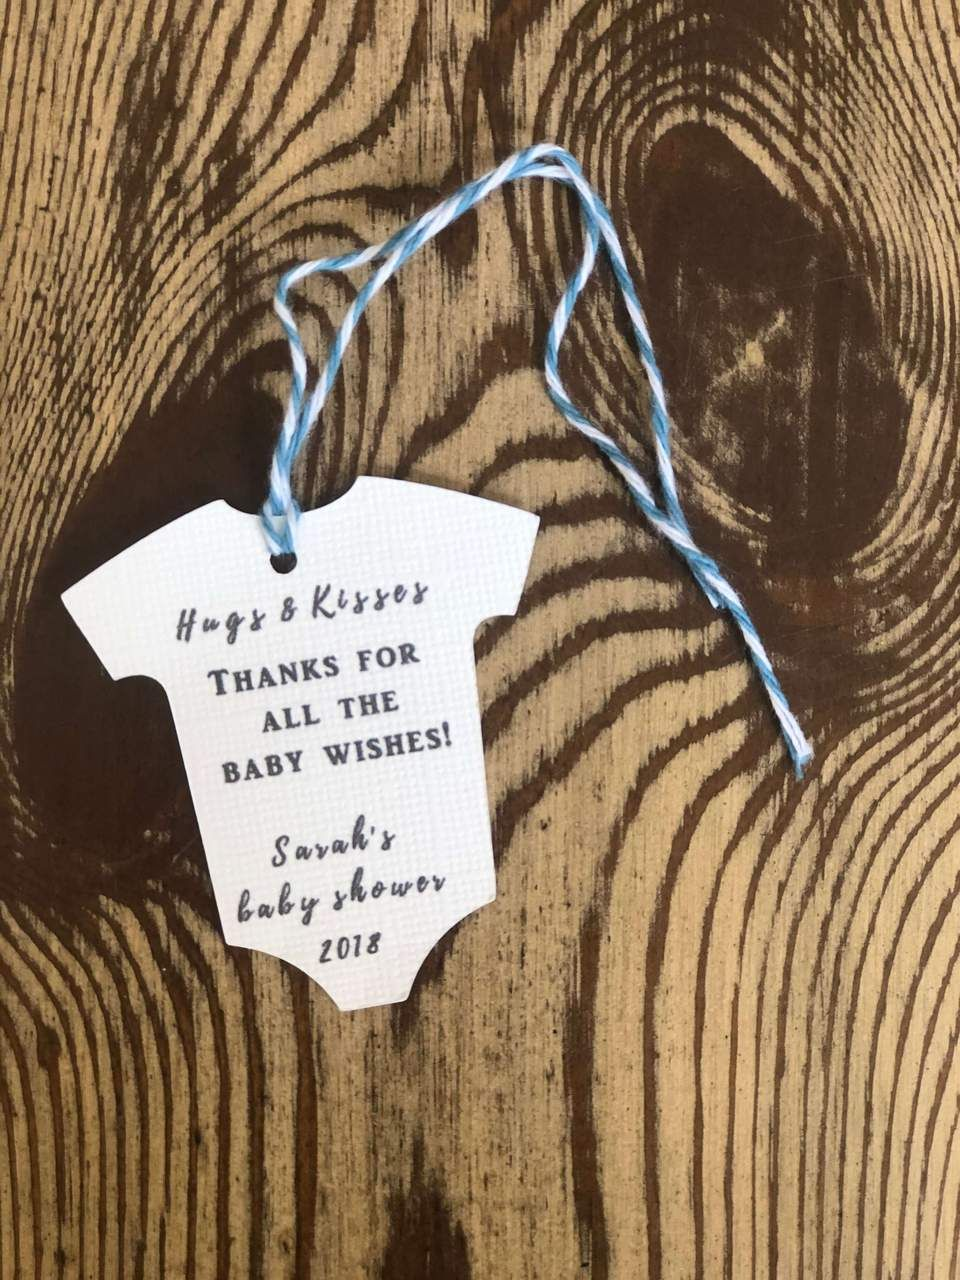 6f42eb46 Hugs & Kisses Thanks for All the Baby Wishes gift tag. Personalize and  order now!